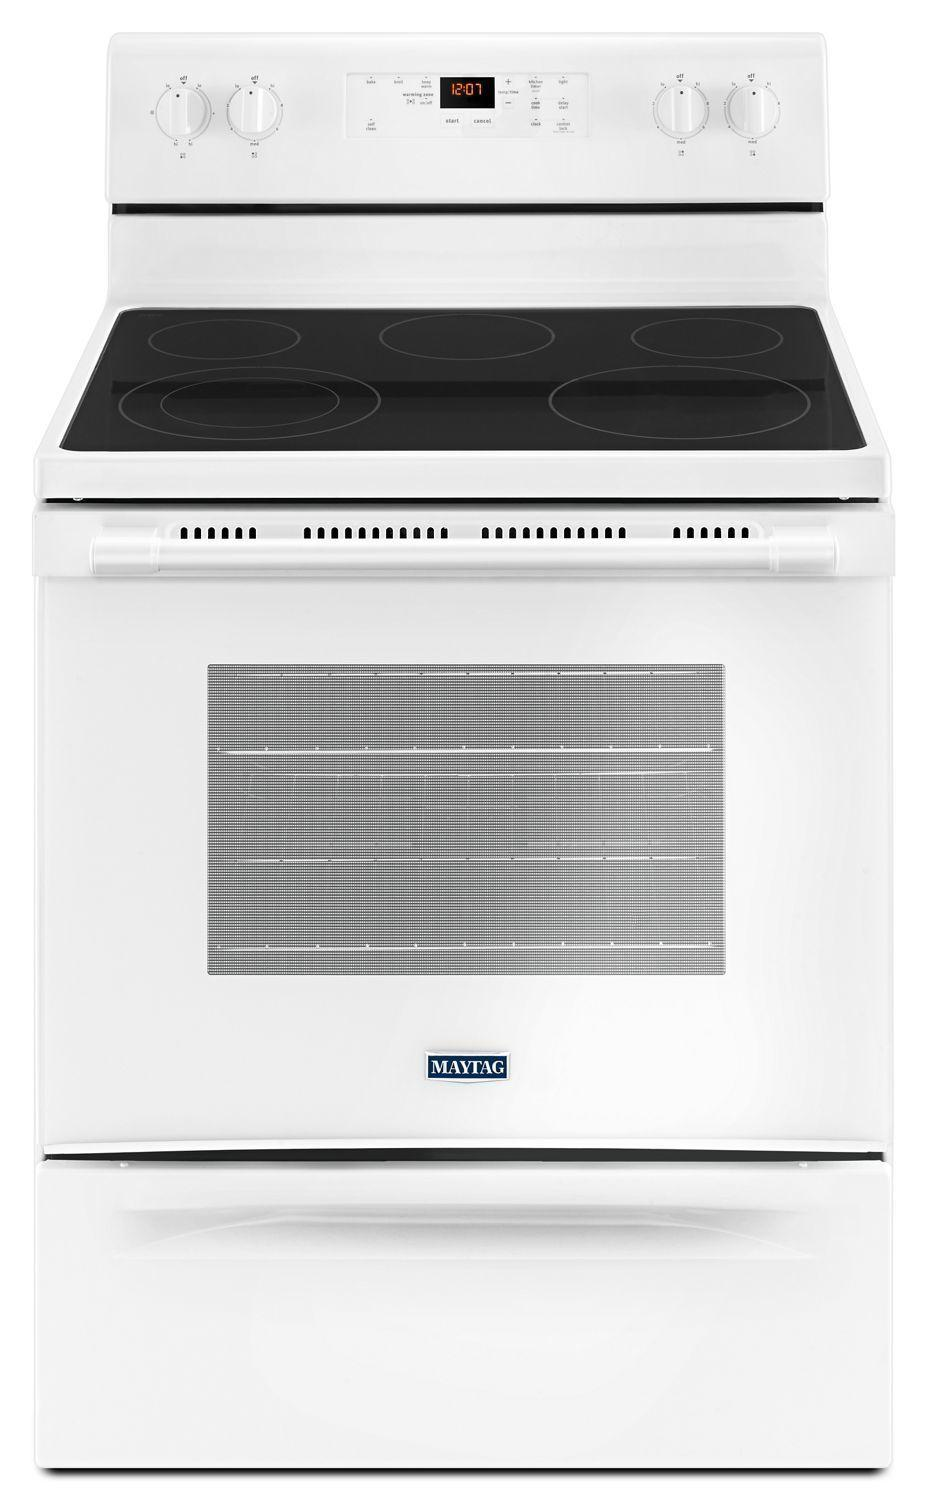 Maytag30-Inch Wide Electric Range With Shatter-Resistant Cooktop - 5.3 Cu. Ft. White